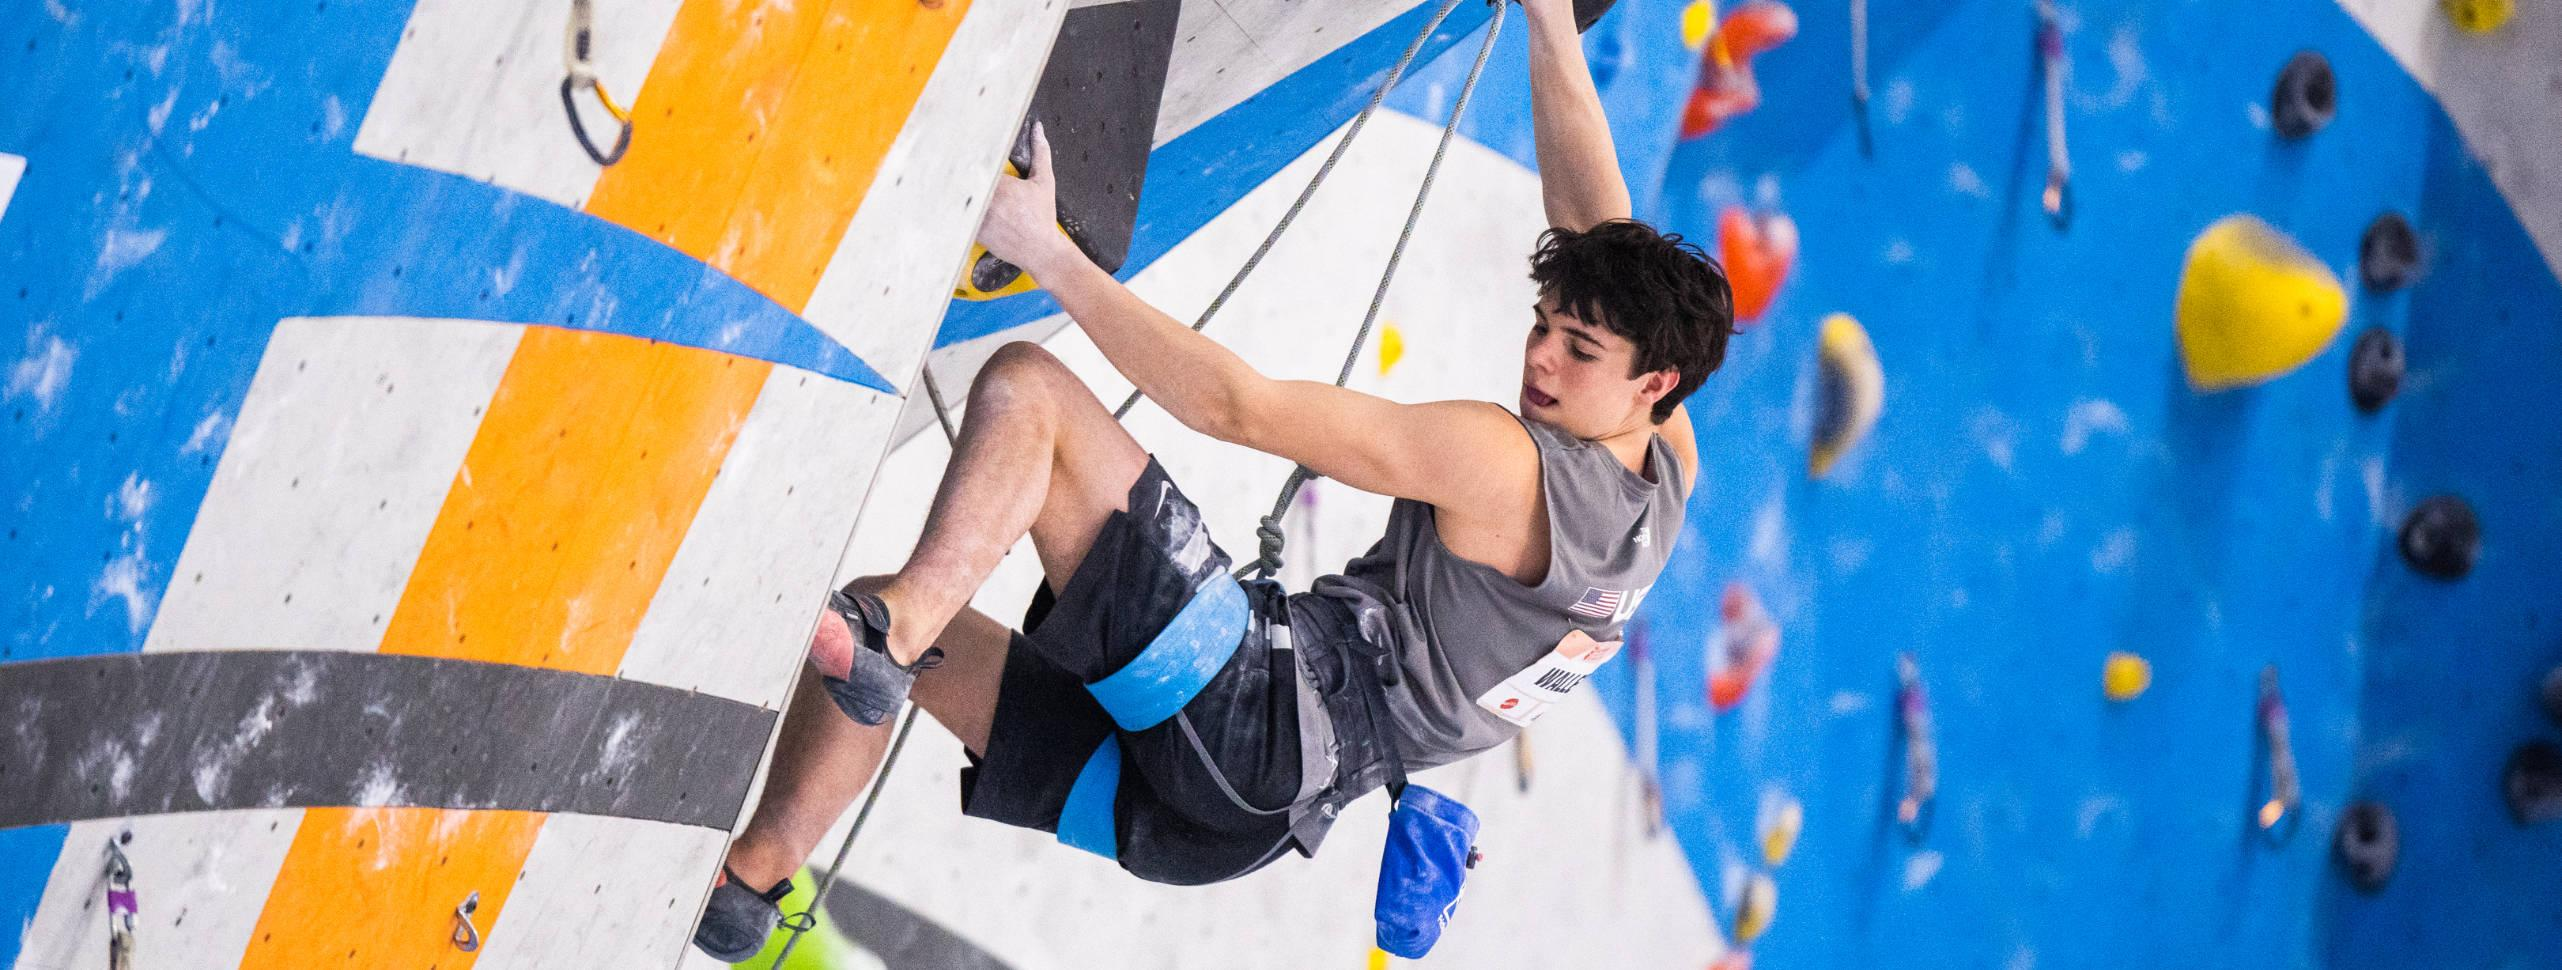 SALT LAKE CITY TO HOST TWO IFSC WORLD CUPS IN 2021